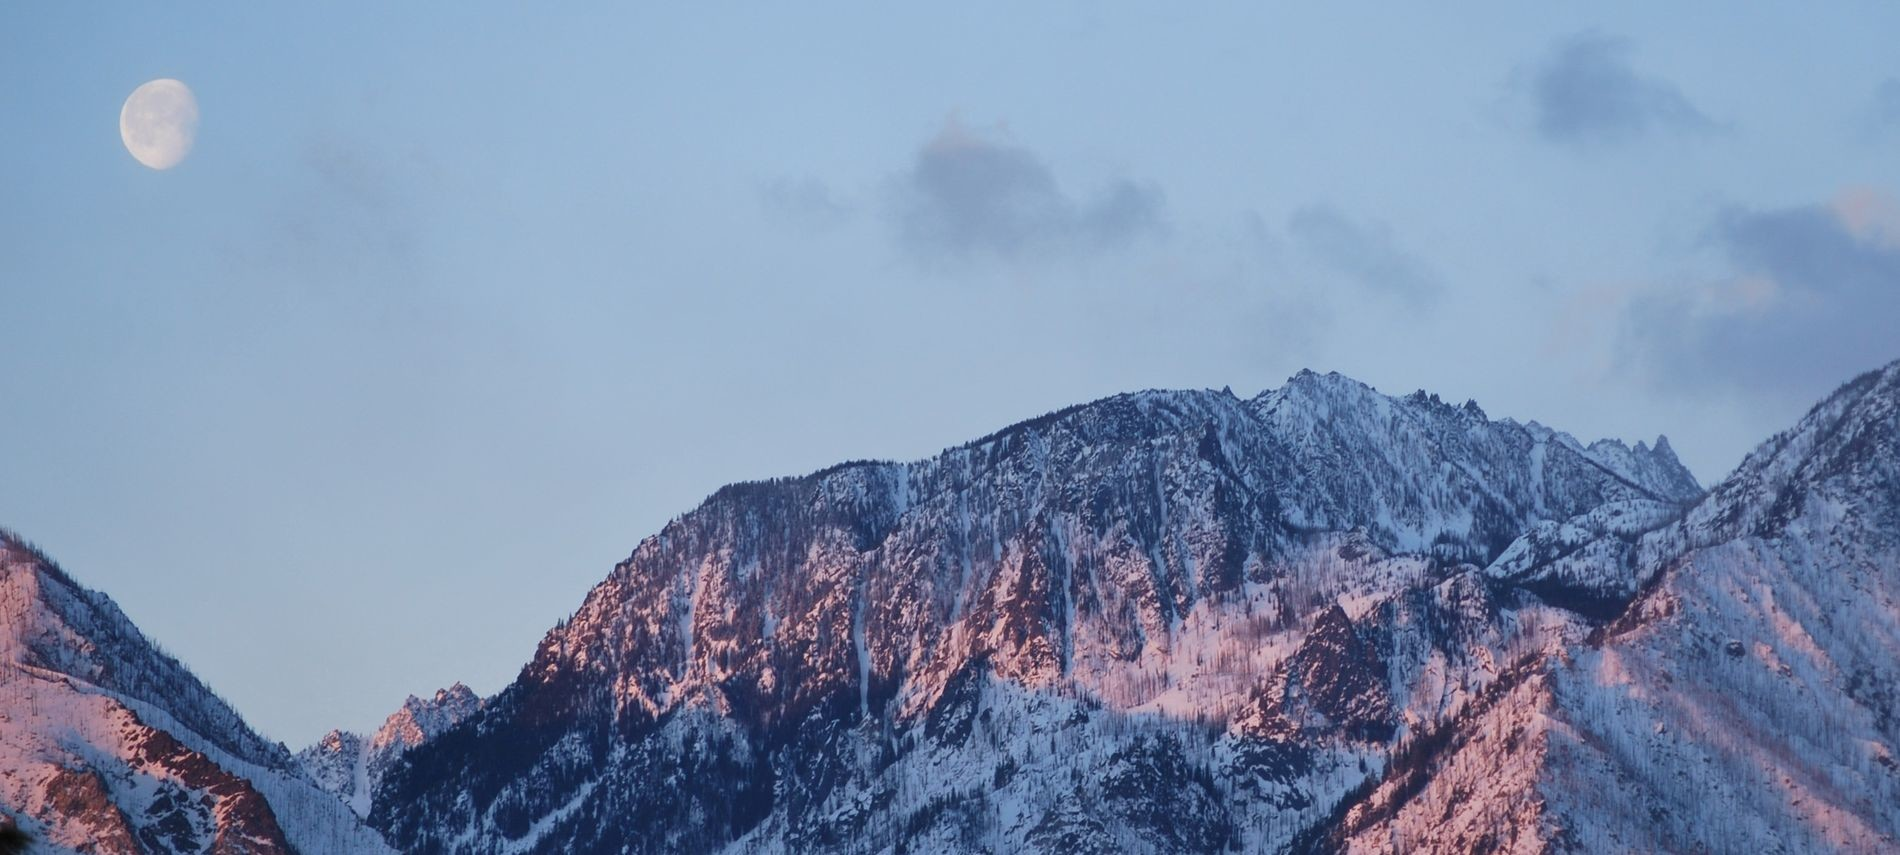 Sunrise view of mountains with pink snow and a full moon setting.